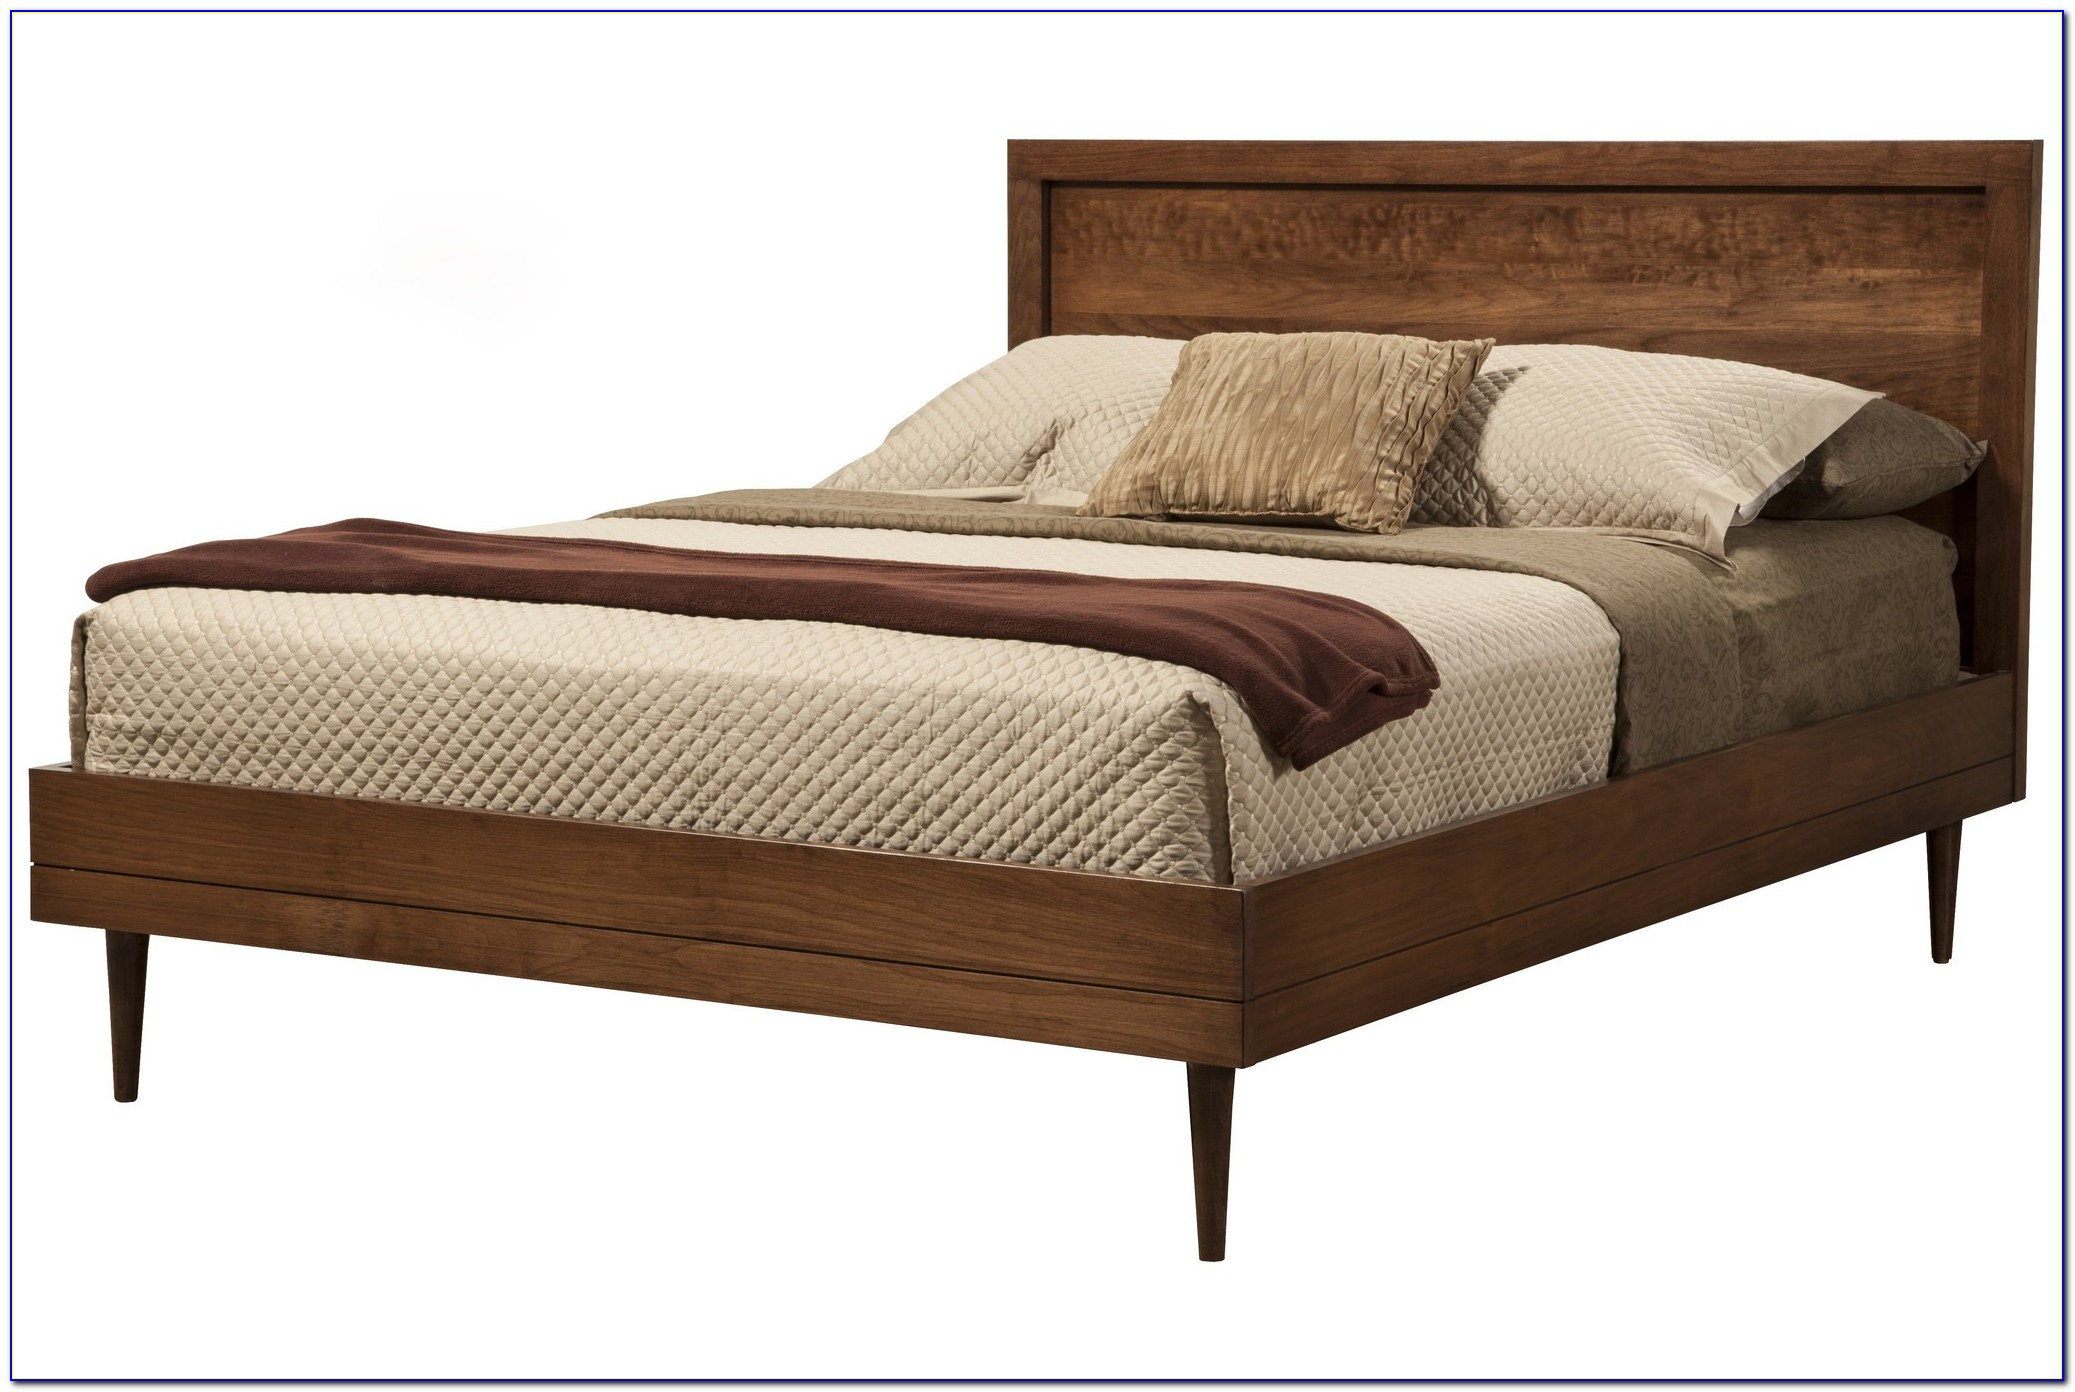 Upholstered King Bed Frame And Headboard